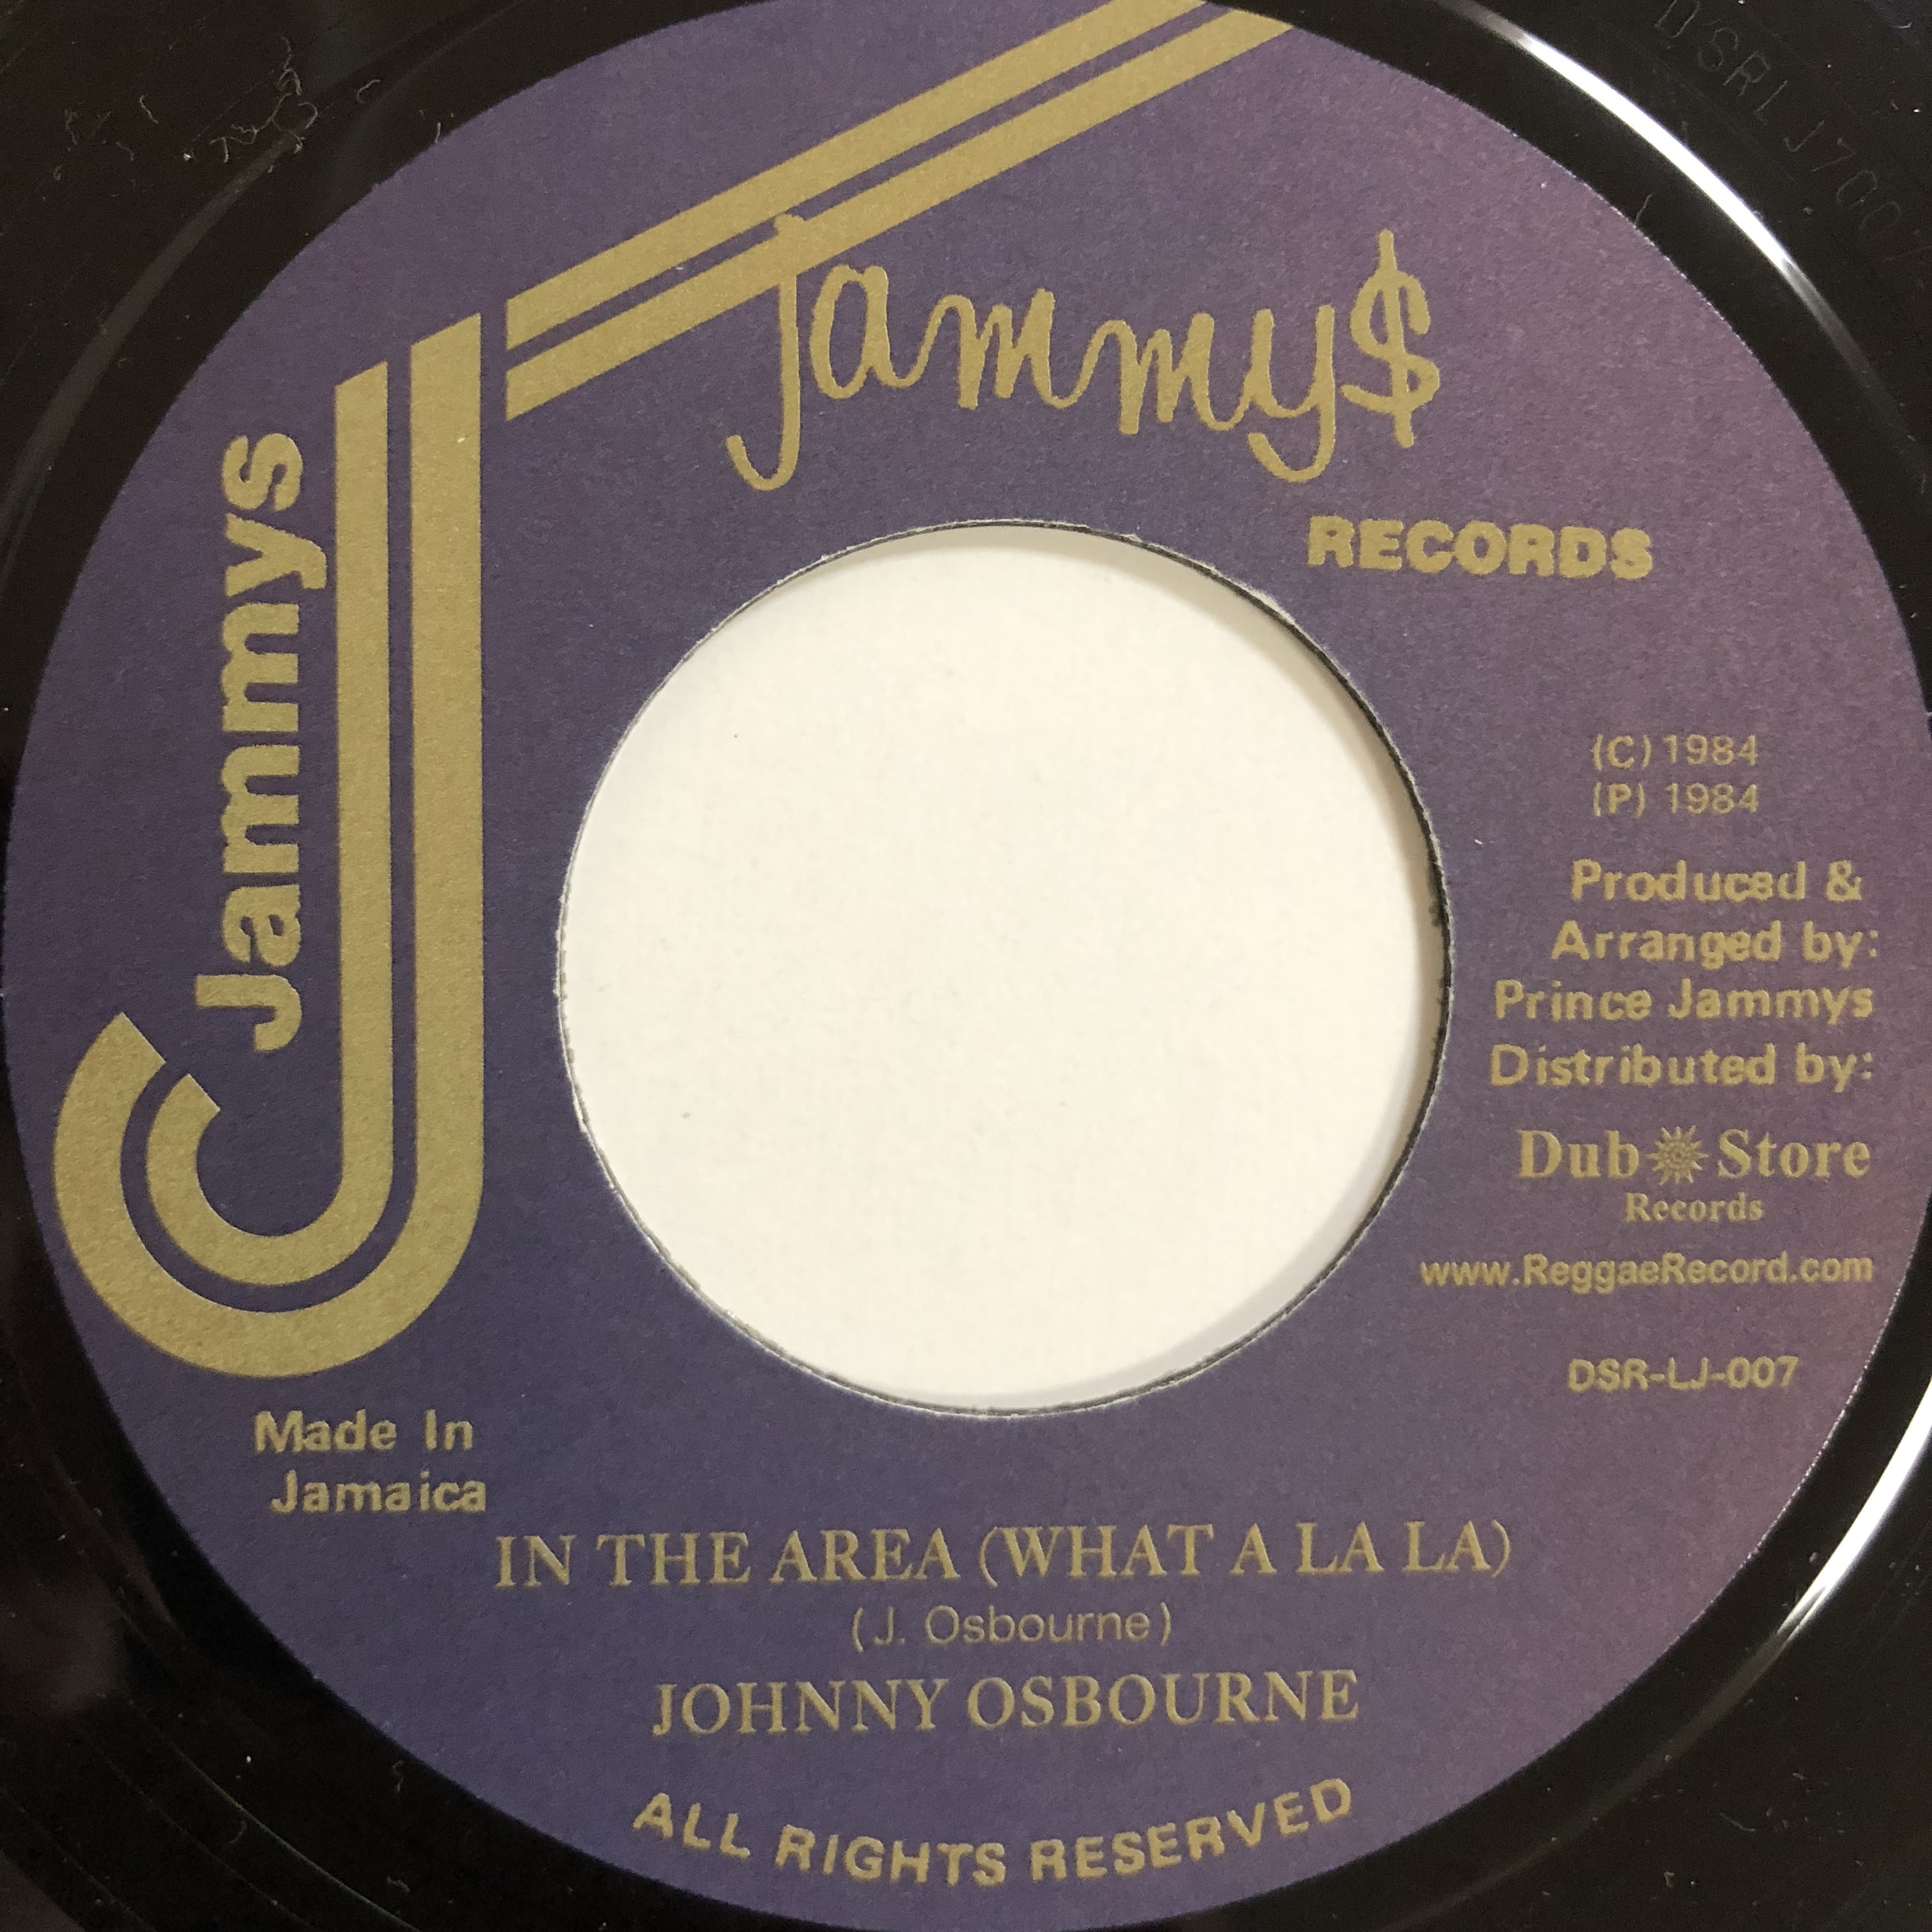 Johnny Osbourne(ジョニーオズボーン) - In The Area (What A La La)【7-20139】